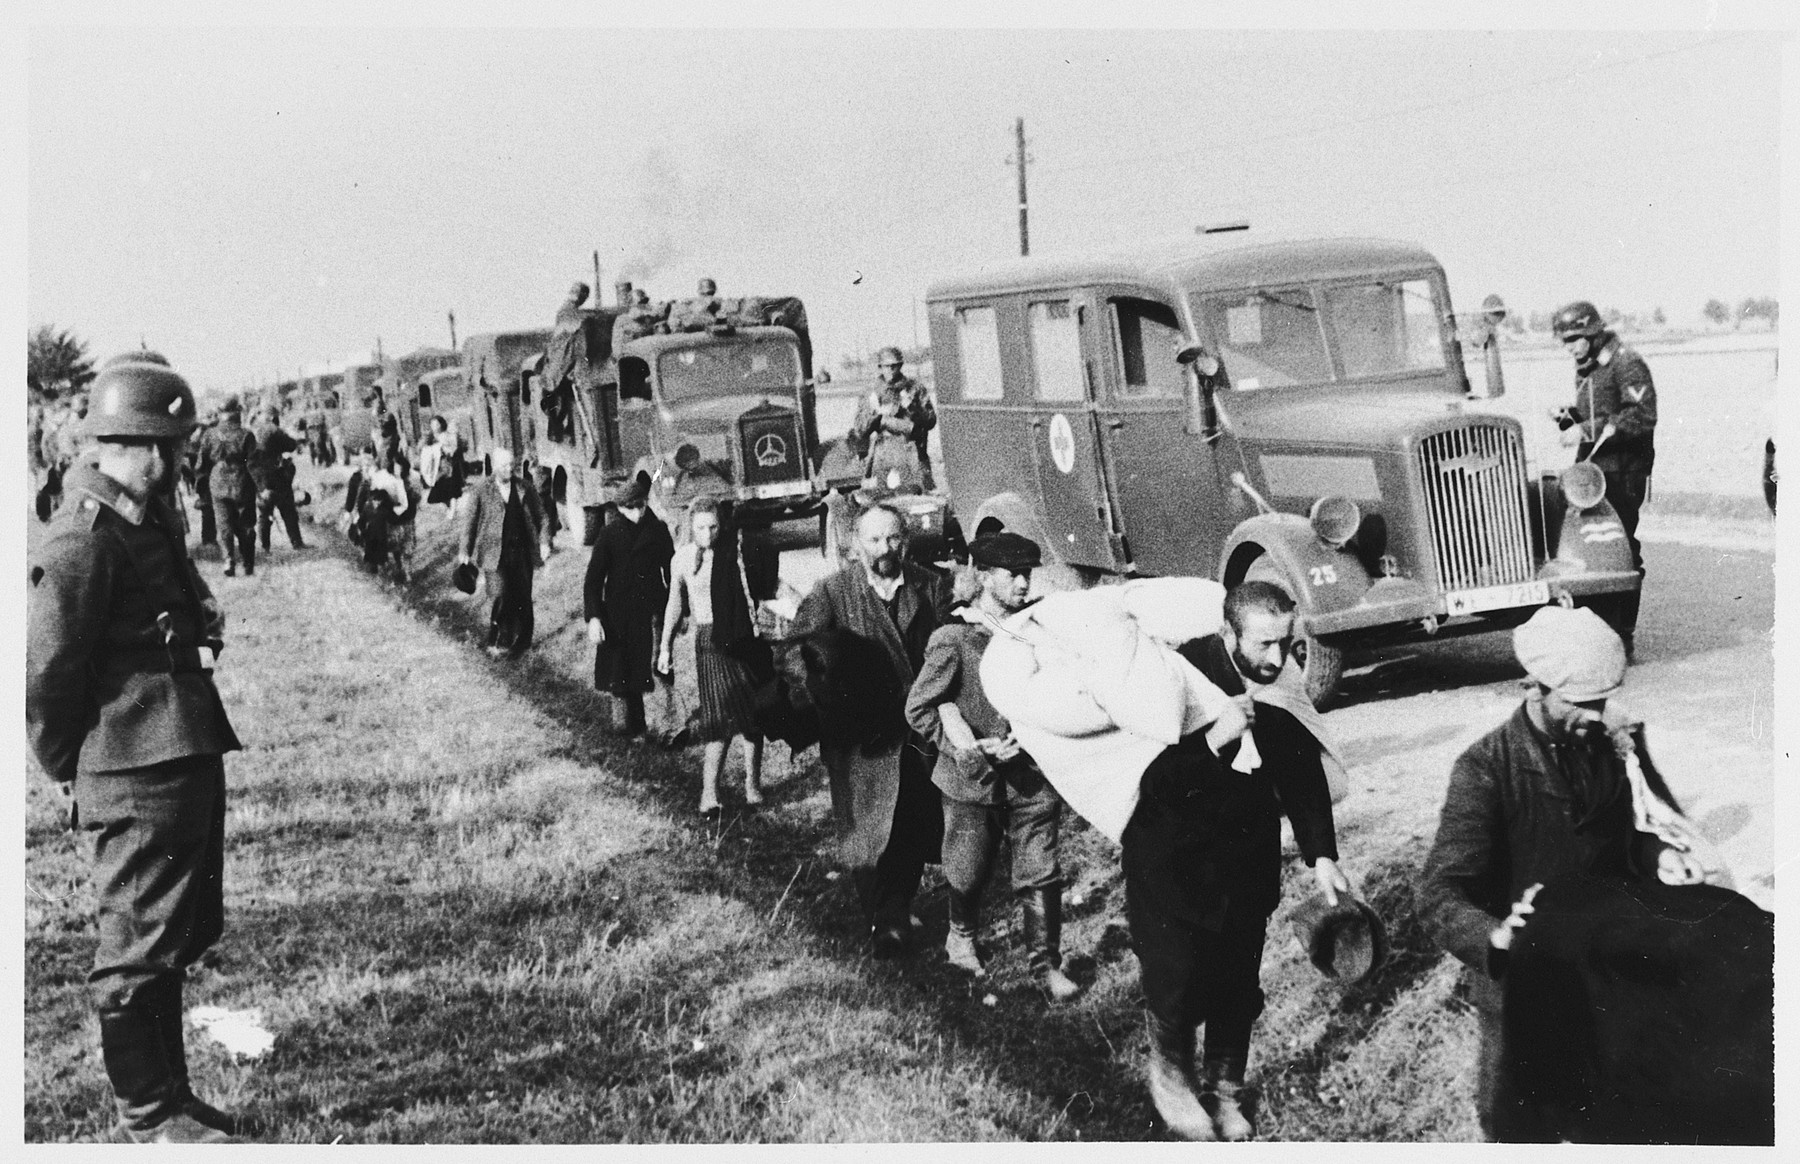 German troops supervise a column of [probably Polish Jews] marching by the side of a road in a forced resettlement action.